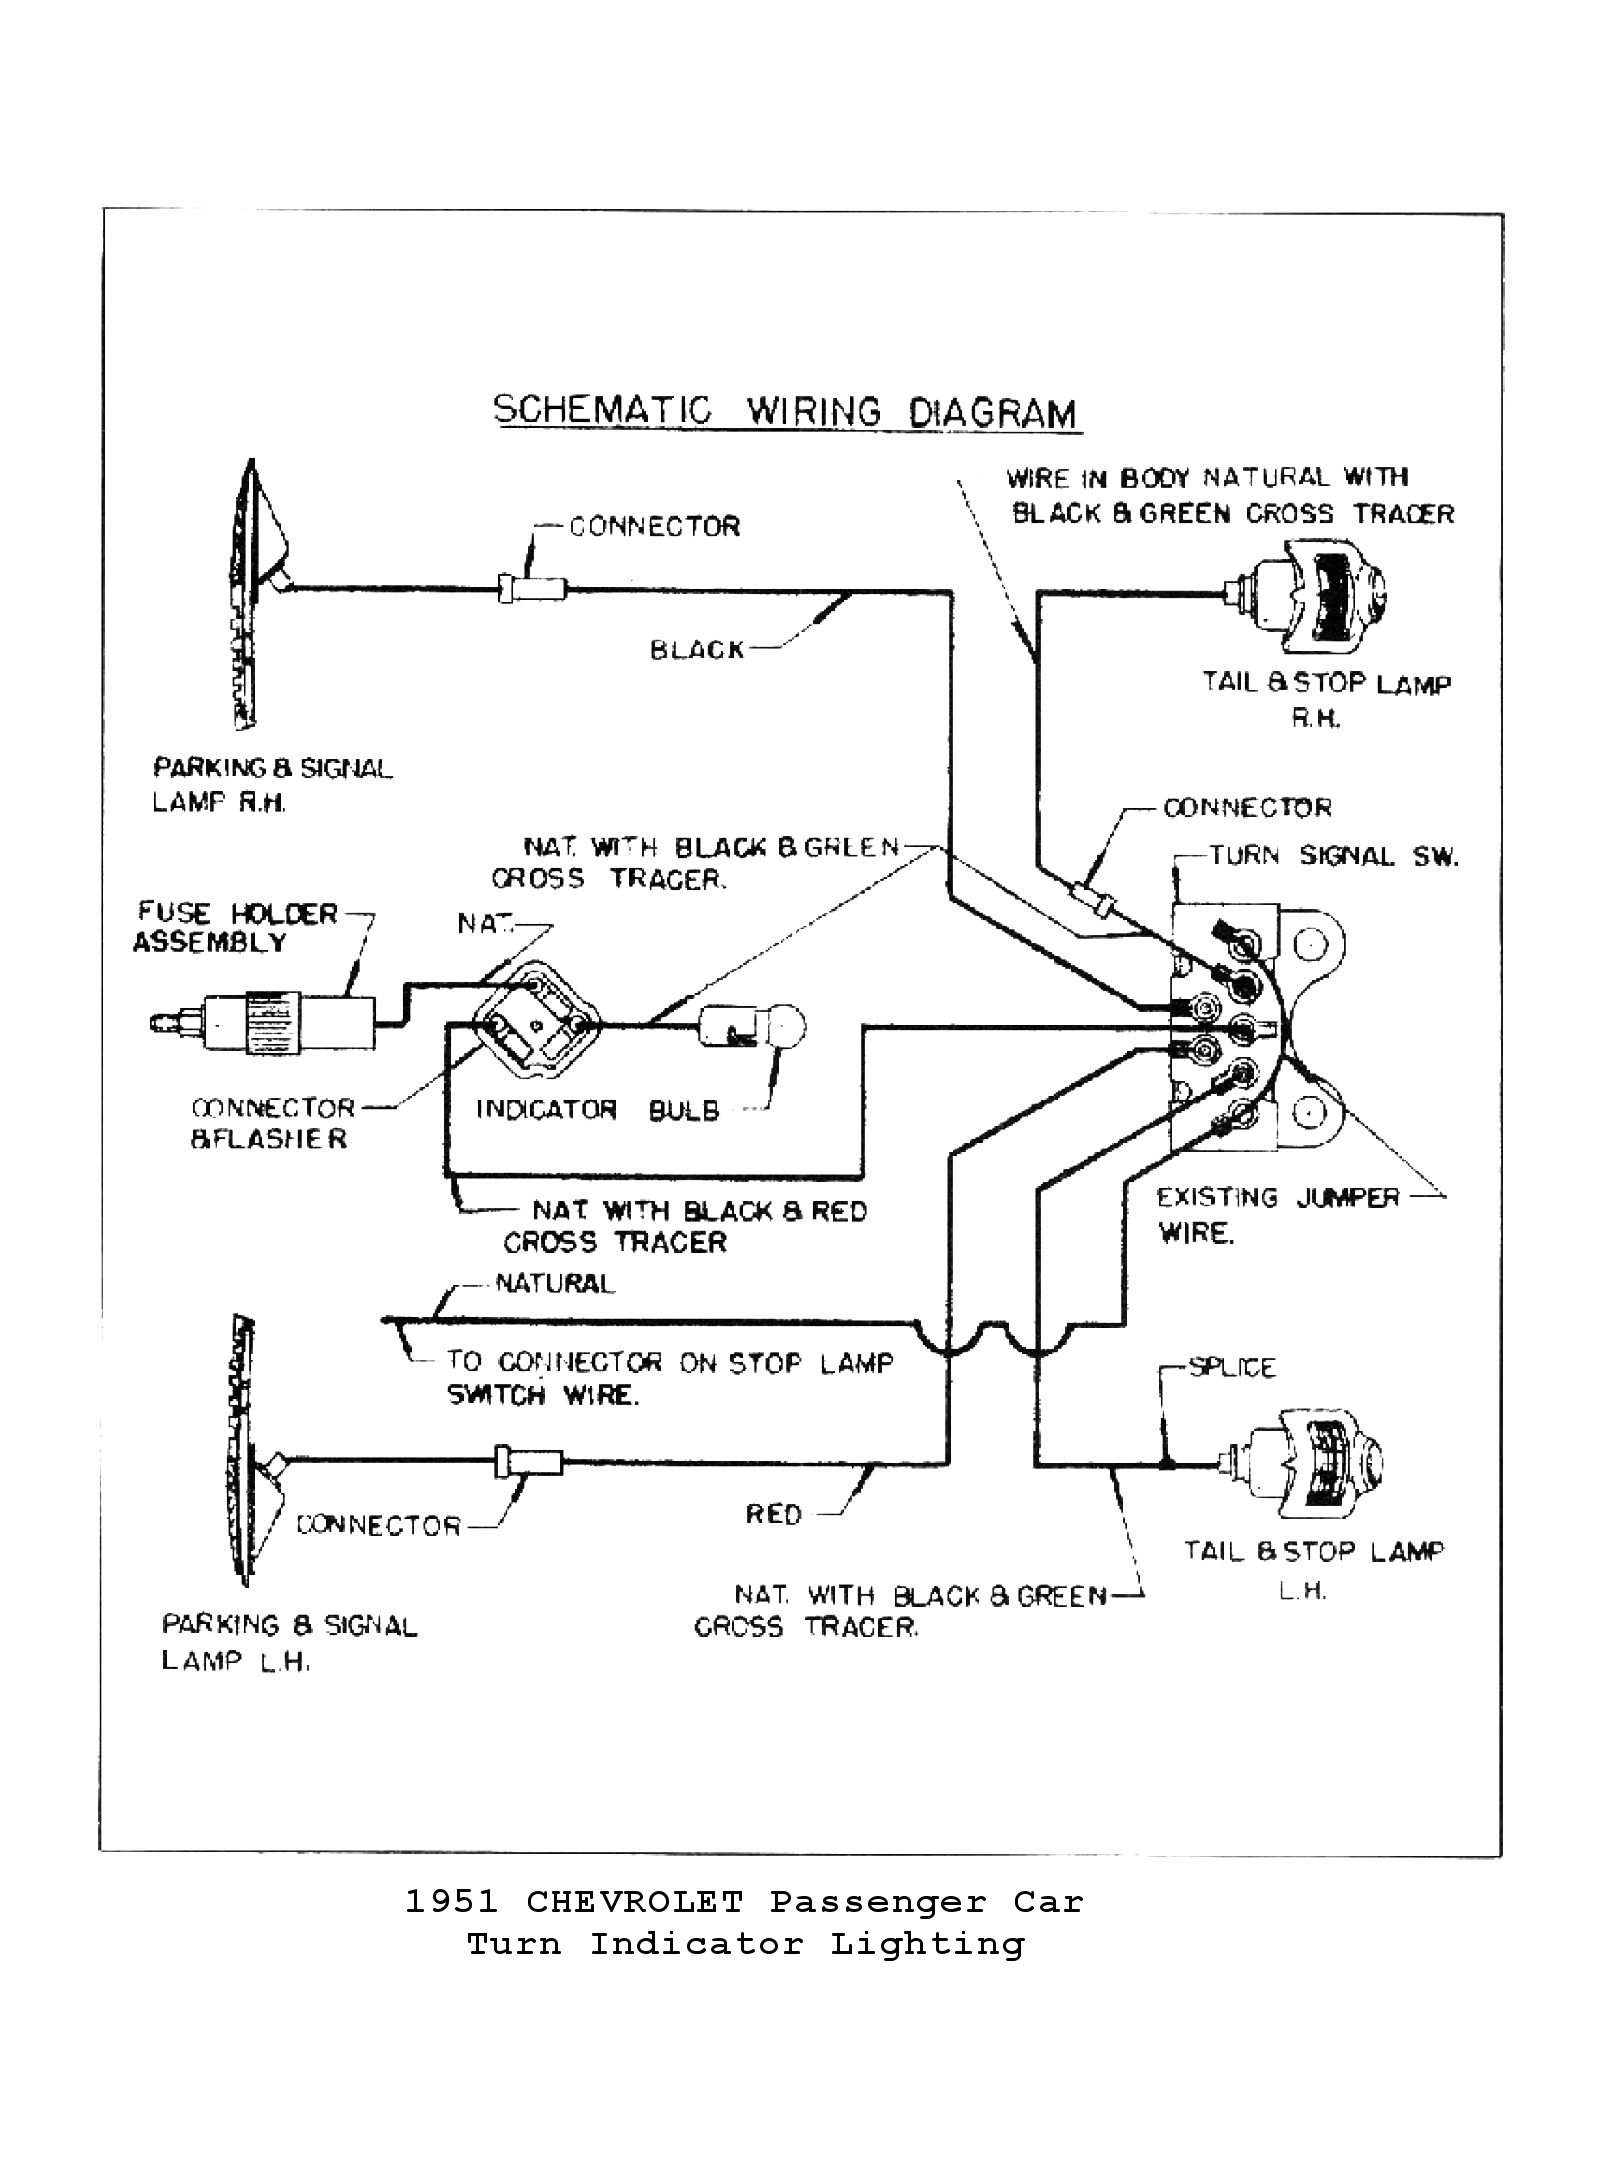 52 Chevy Wiring Diagram Simple Chevrolet 350 1948 Truck Data Alternator